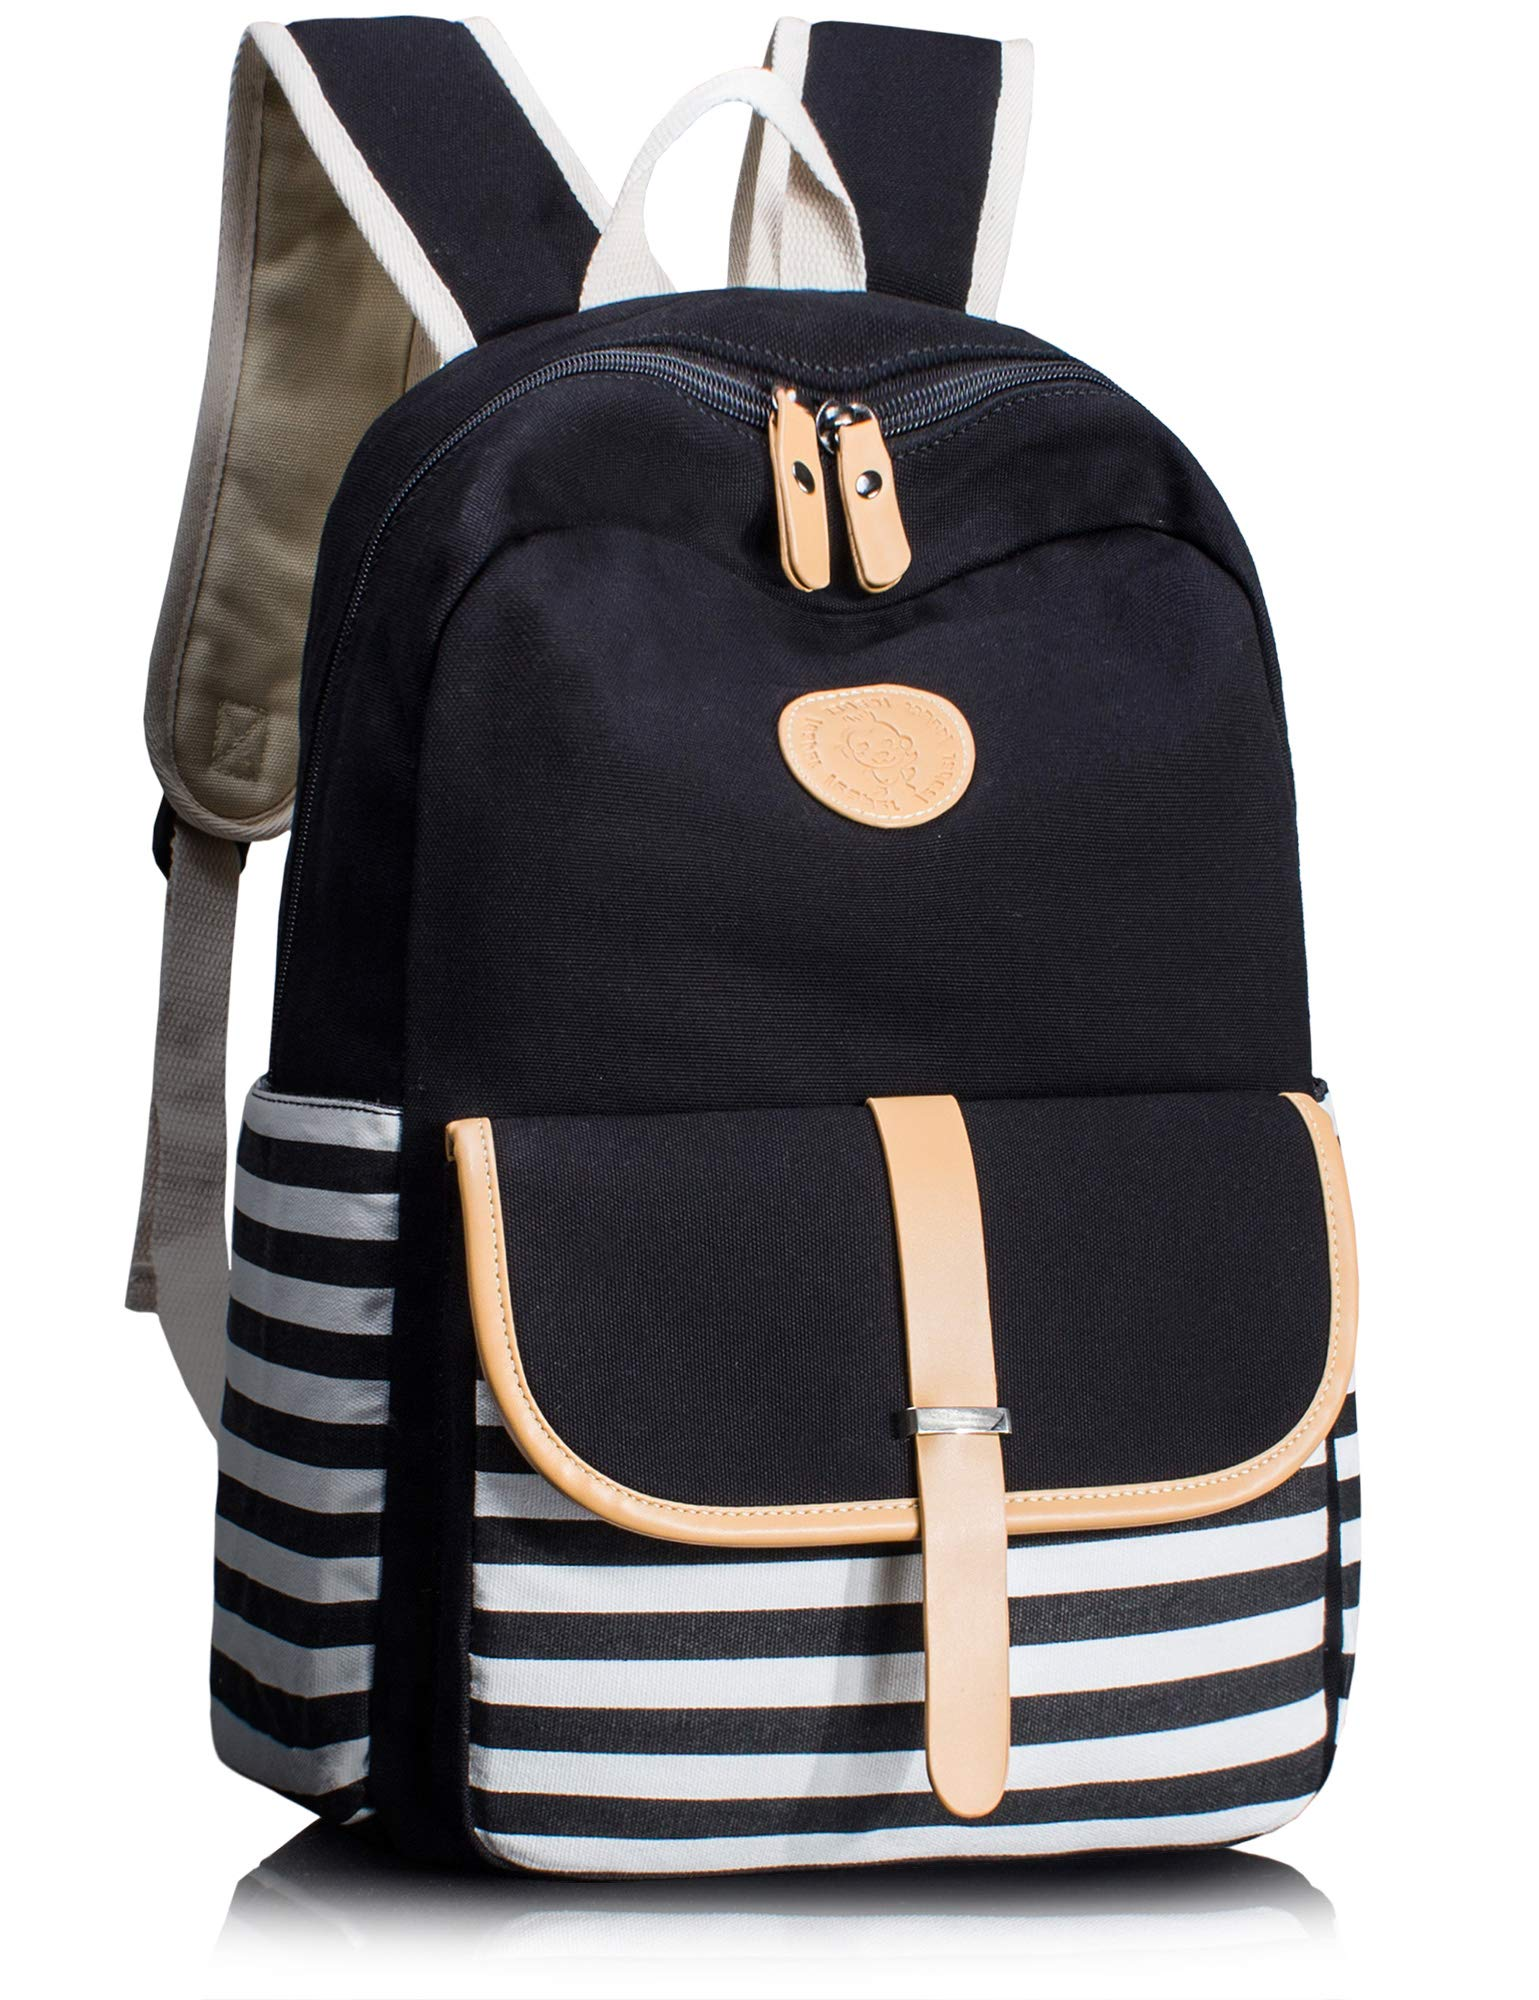 Leaper Thickened Canvas School Backpack for Girls Laptop Bag Handbag Black by Leaper